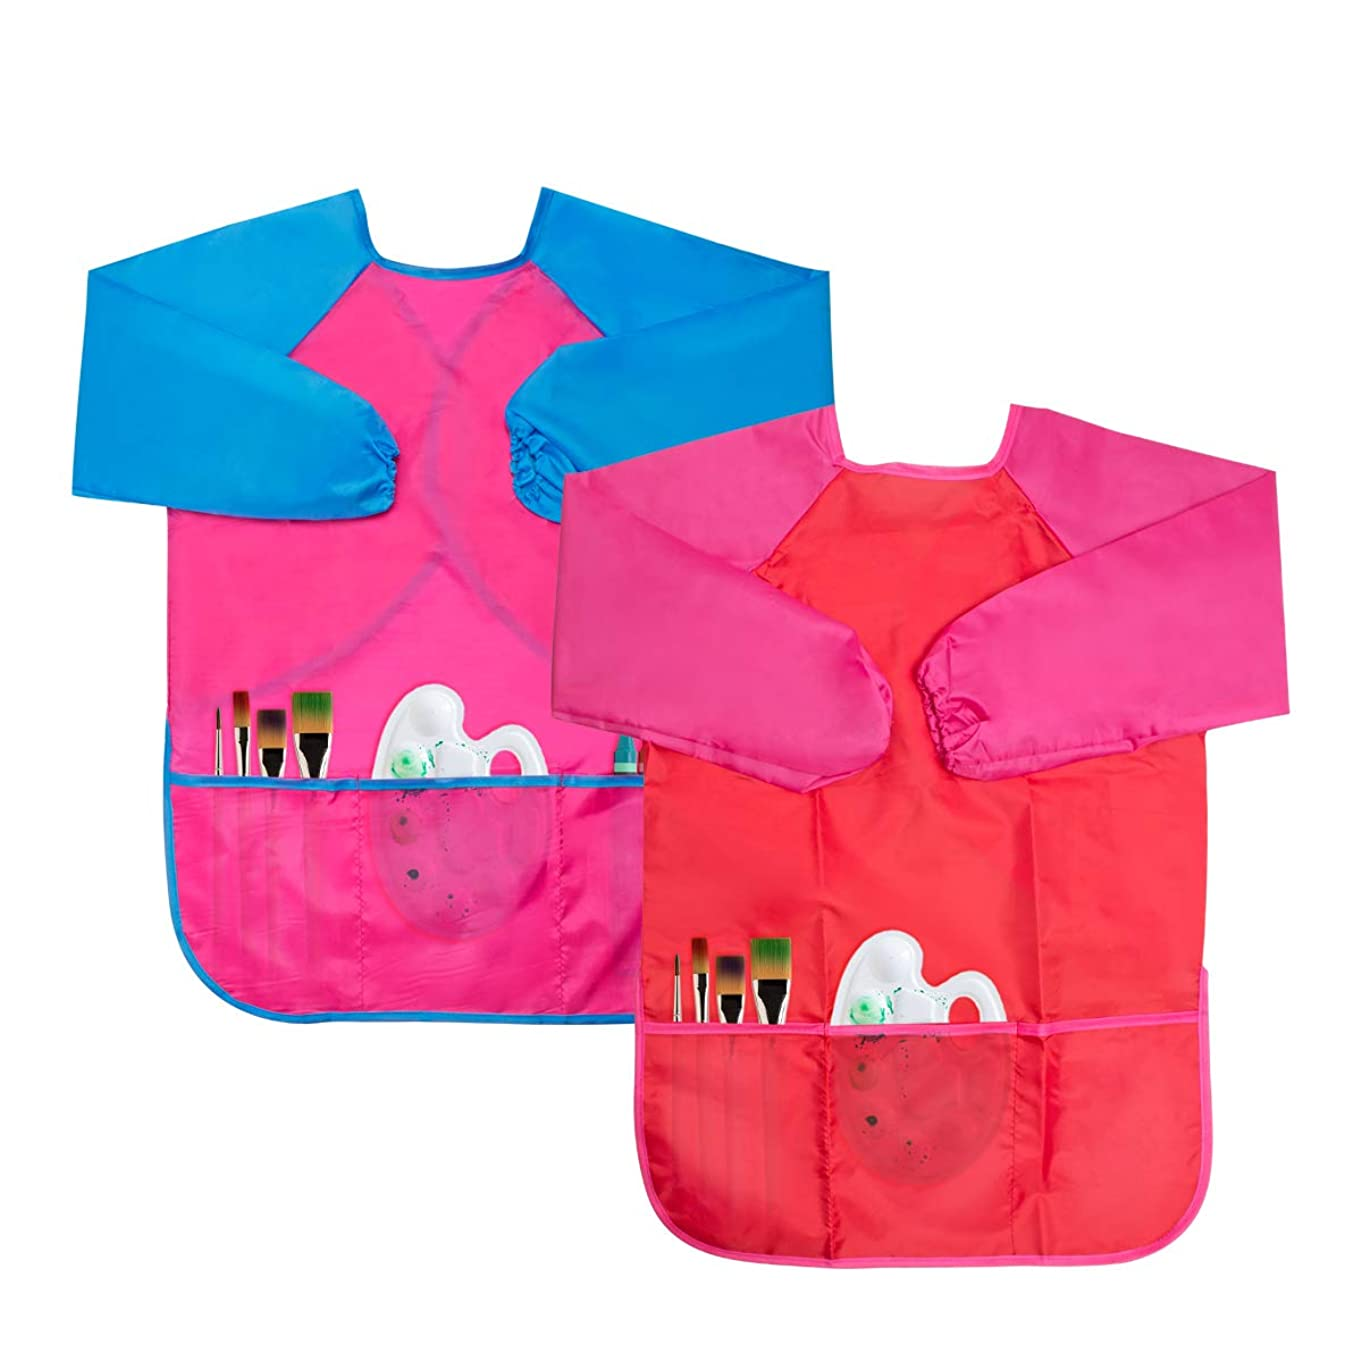 Chanaco 2 Pack Kids Art Smocks, Children Waterproof Artist Painting Aprons Long Sleeve with 3 Pockets for Age 2-6 Years, 2 Colors (2 Pack (Red & Rose Red))